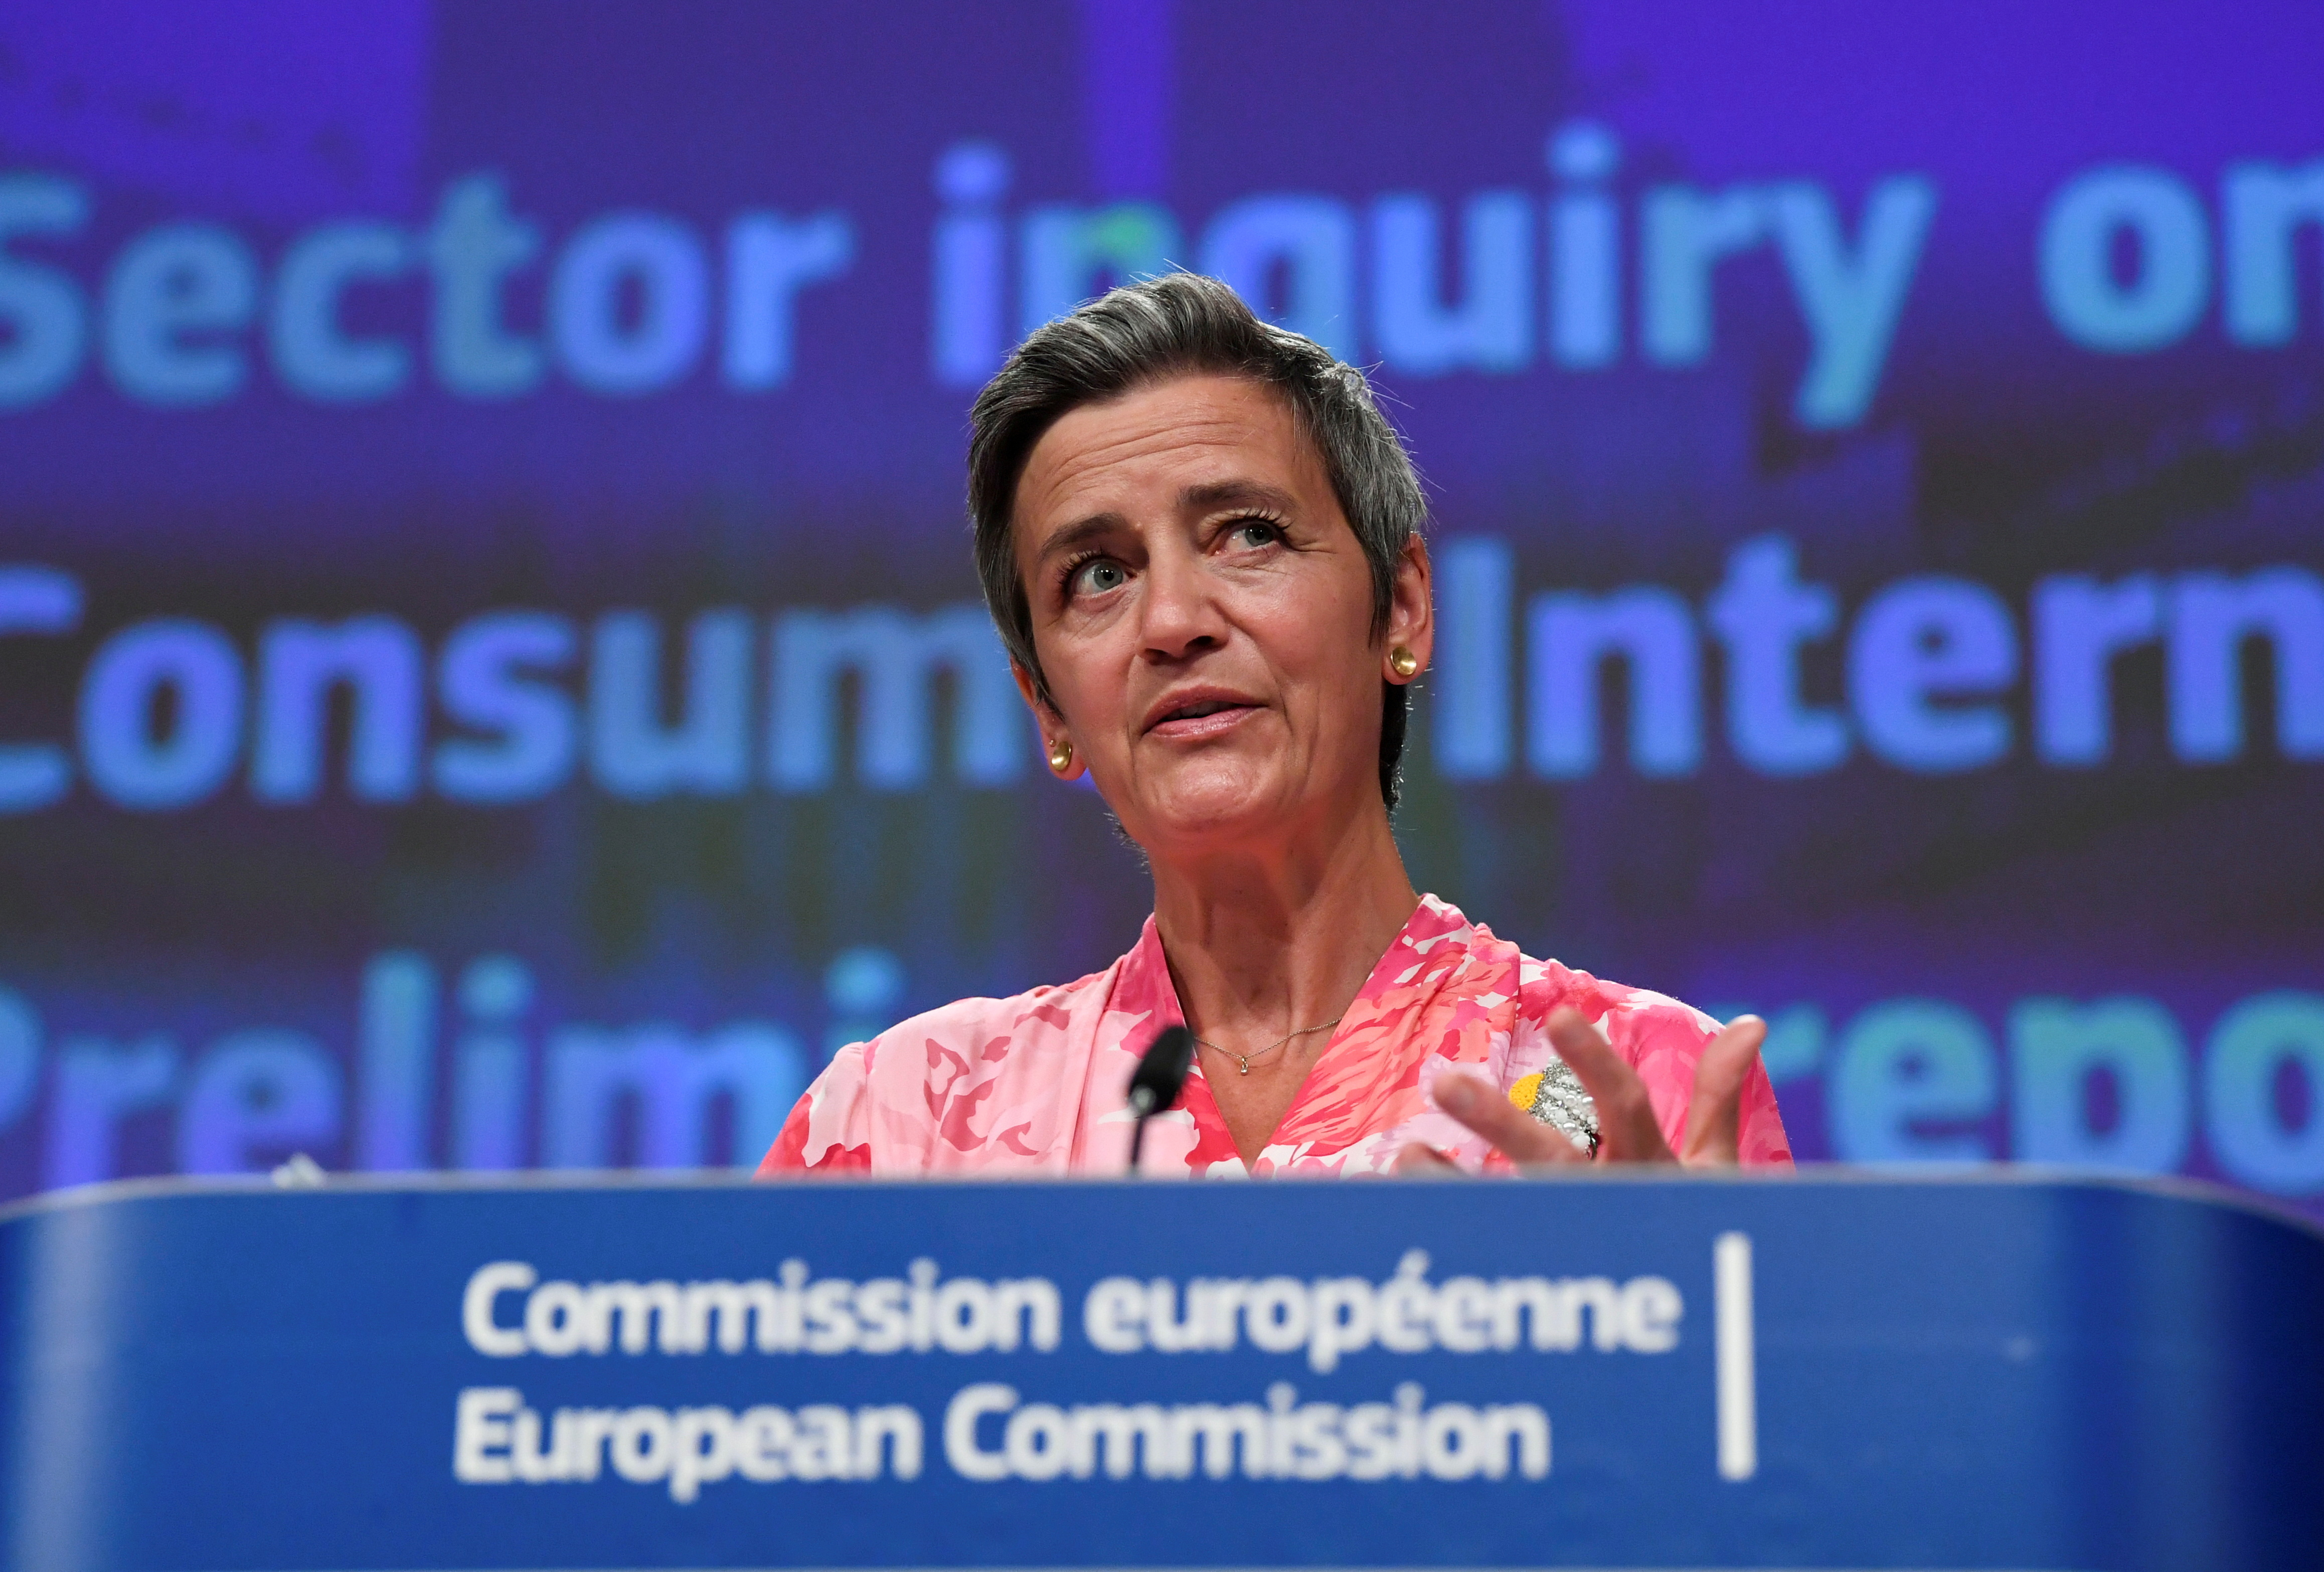 European Commissioner Margrethe Vestager speaks during a news conference on a competition sector inquiry at the EU headquarters in Brussels, Belgium June 9, 2021. John Thys/Pool via REUTERS/File Photo